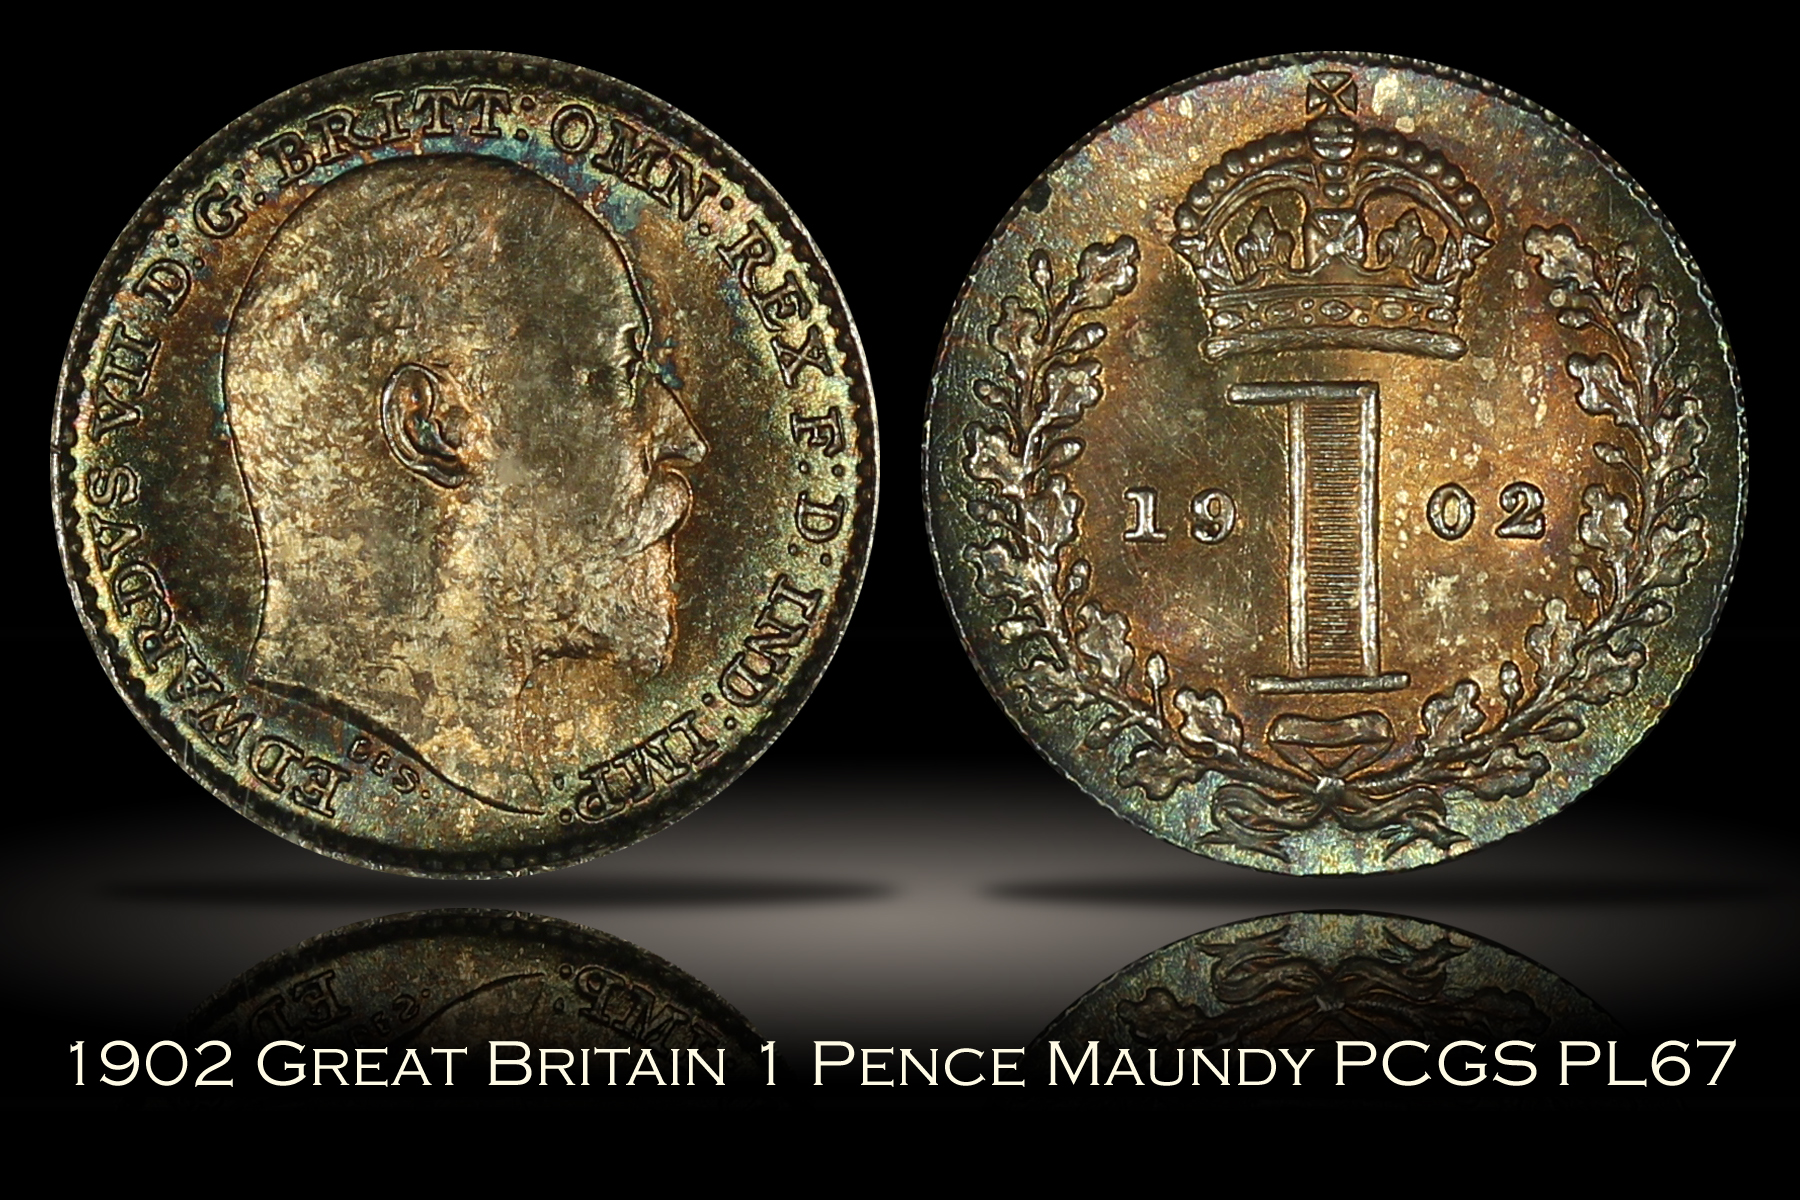 1902 Great Britain 1 Pence Maundy PCGS PL67